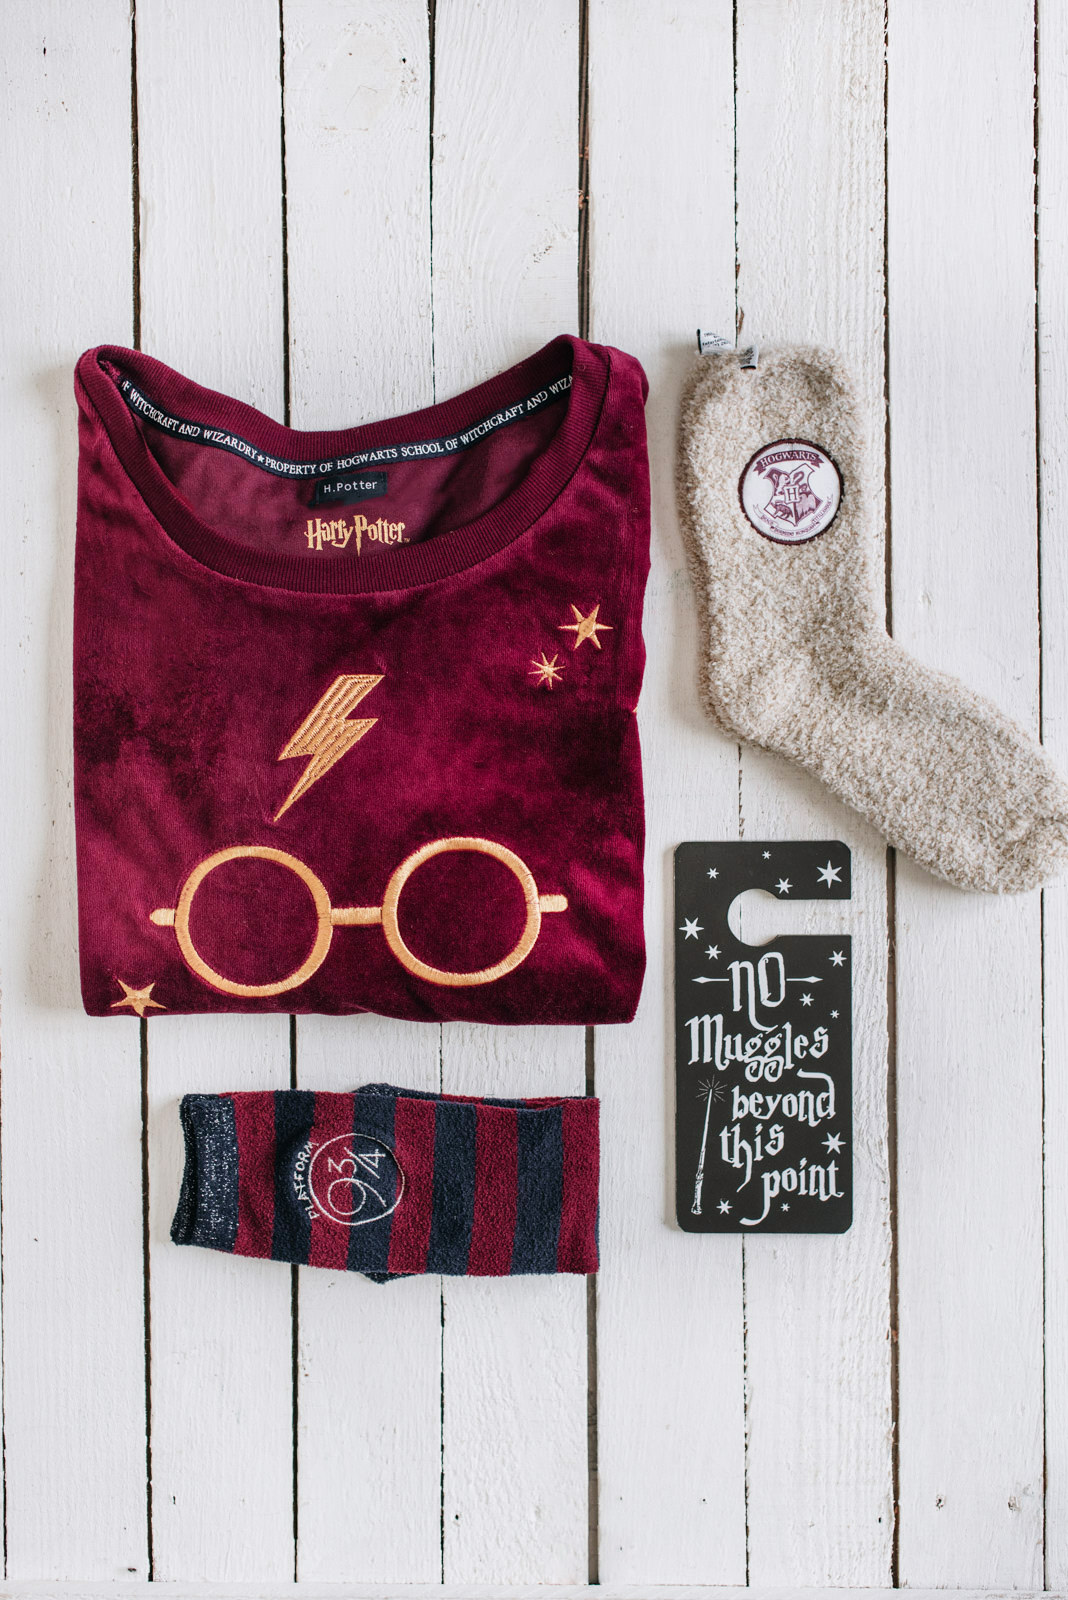 Blog-Mode-And-The-City-Lifestyle-Cinq-Petites-Choses-223-Harry-Potter-Primark